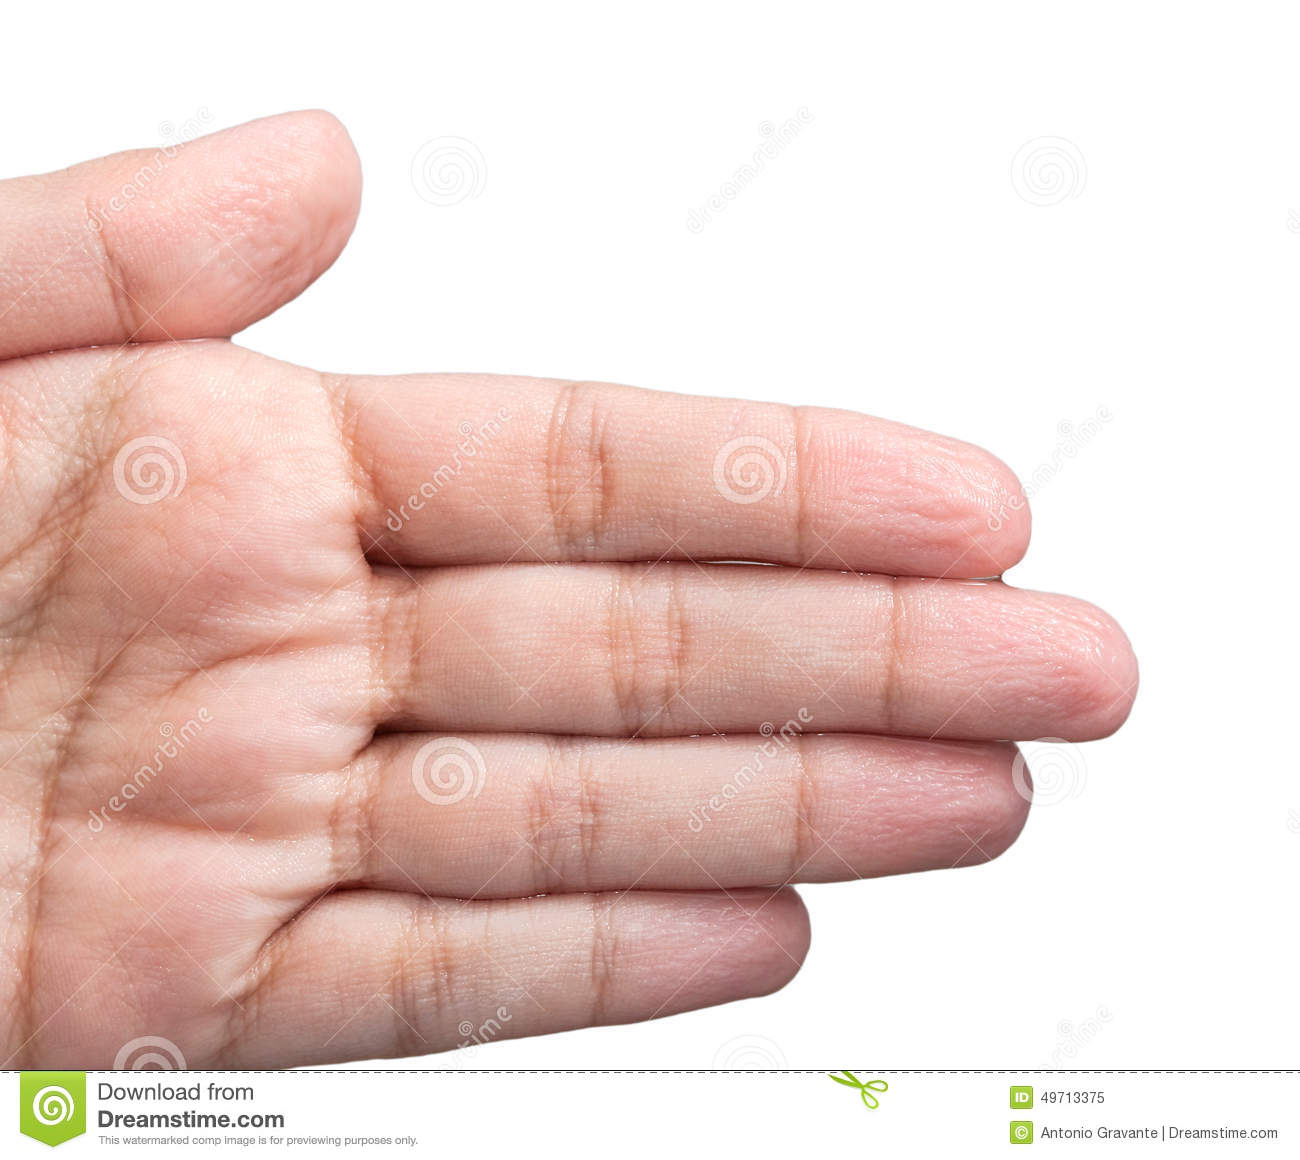 Wrinkled Skin Of The Hands Stock Photo - Image: 49713375